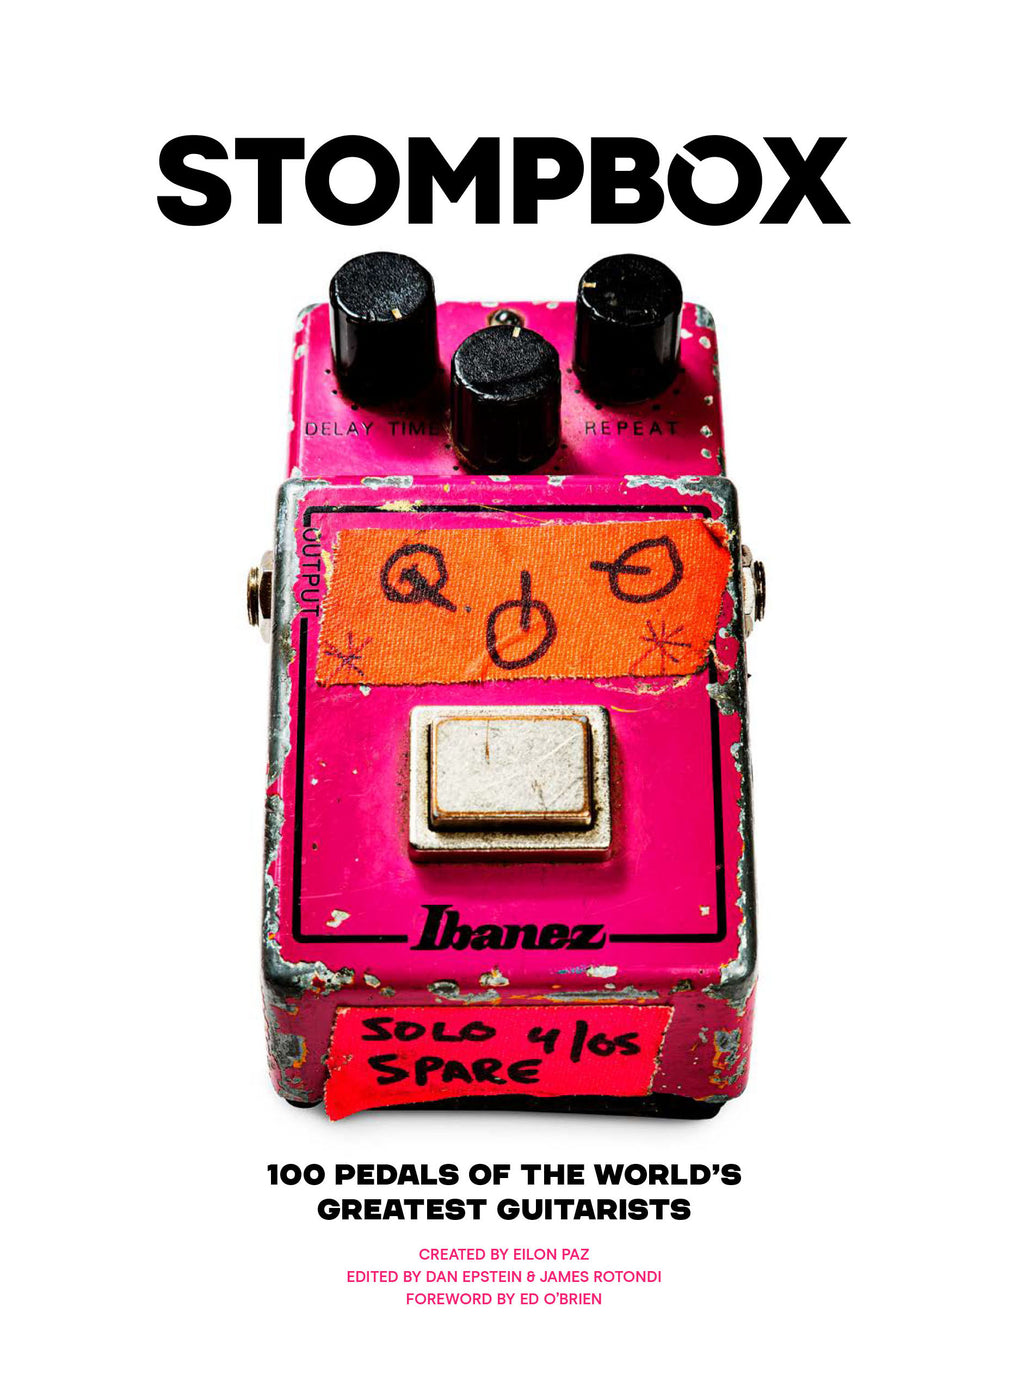 Stompbox: 100 Pedals Of The World's Greatest Guitarists (Book)